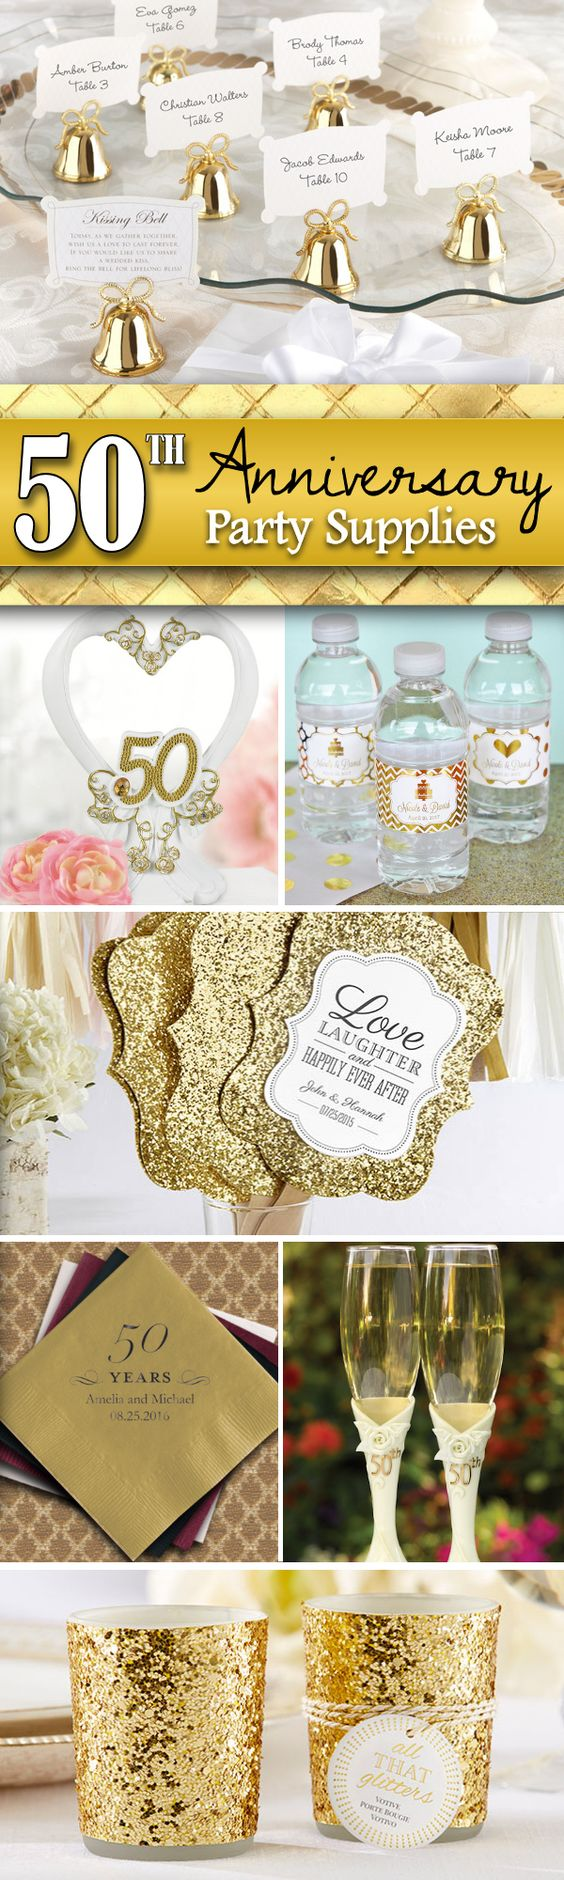 50th wedding anniversary, Anniversary parties and Golden